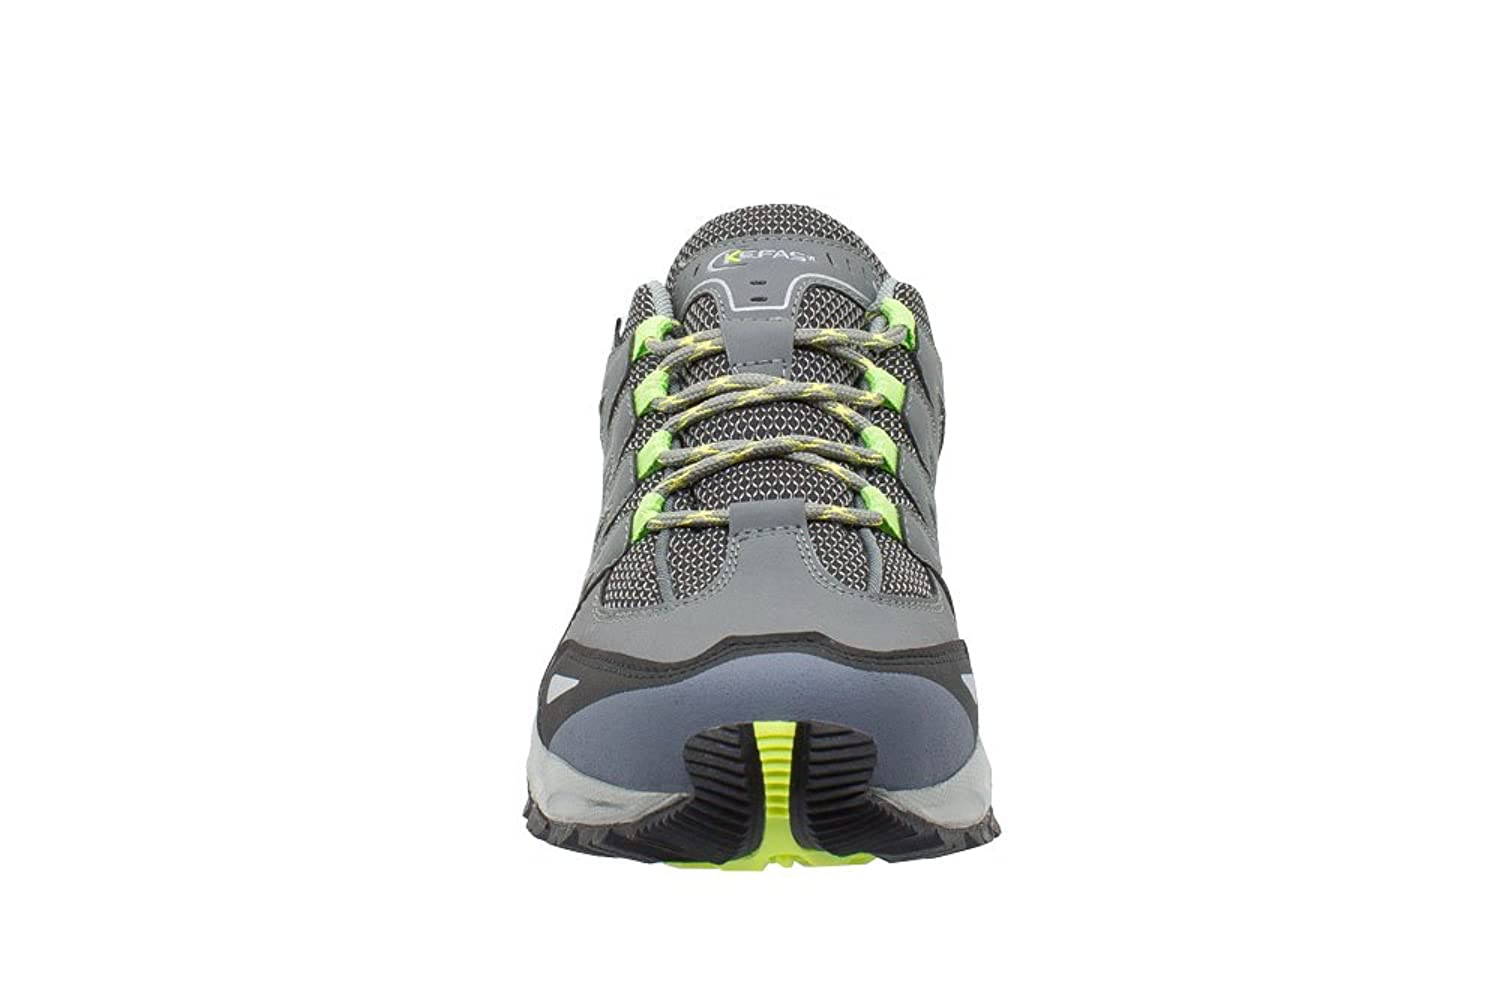 Kefas Free Man 3628 - Zapatos Sportive Da Fastpacking Hombre Mujer 46 Gris Xcng2Qp